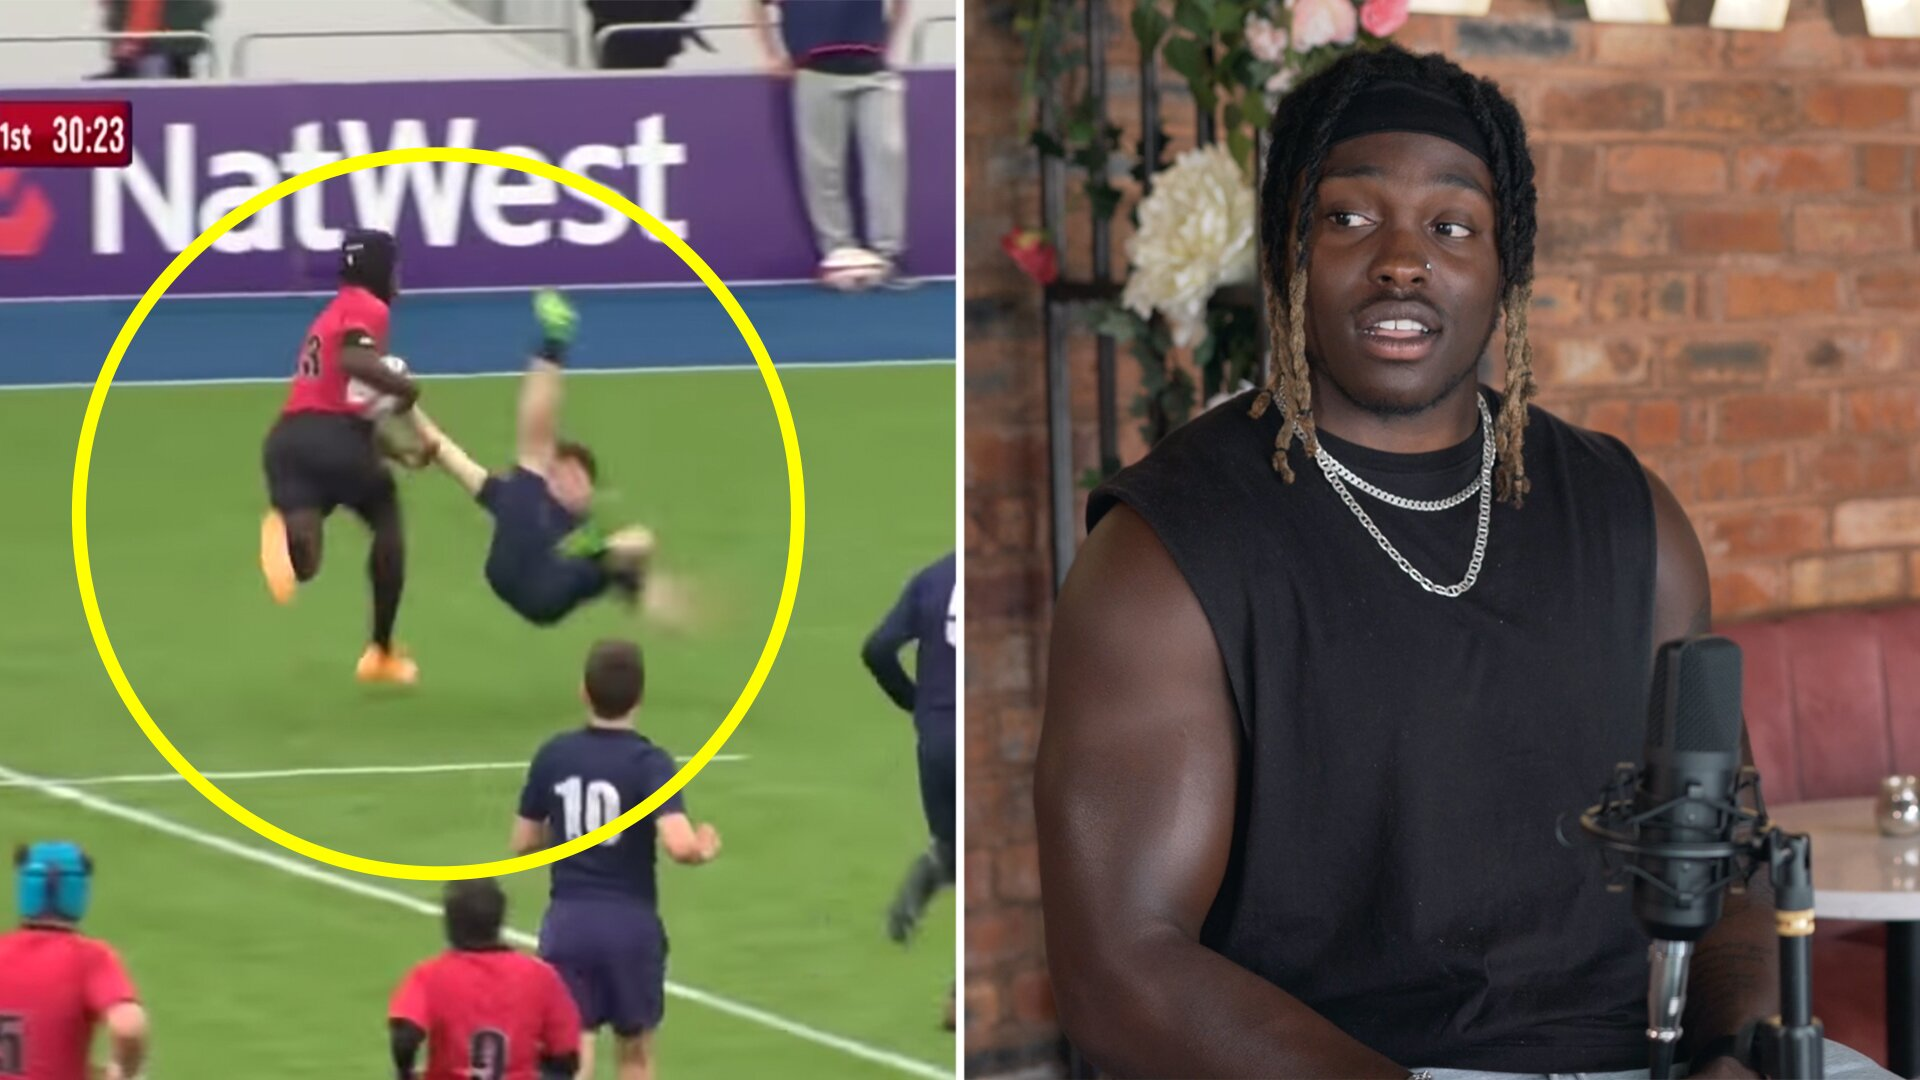 Rugby's first viral wonderkid describes the devastating repercussions of his overnight stardom